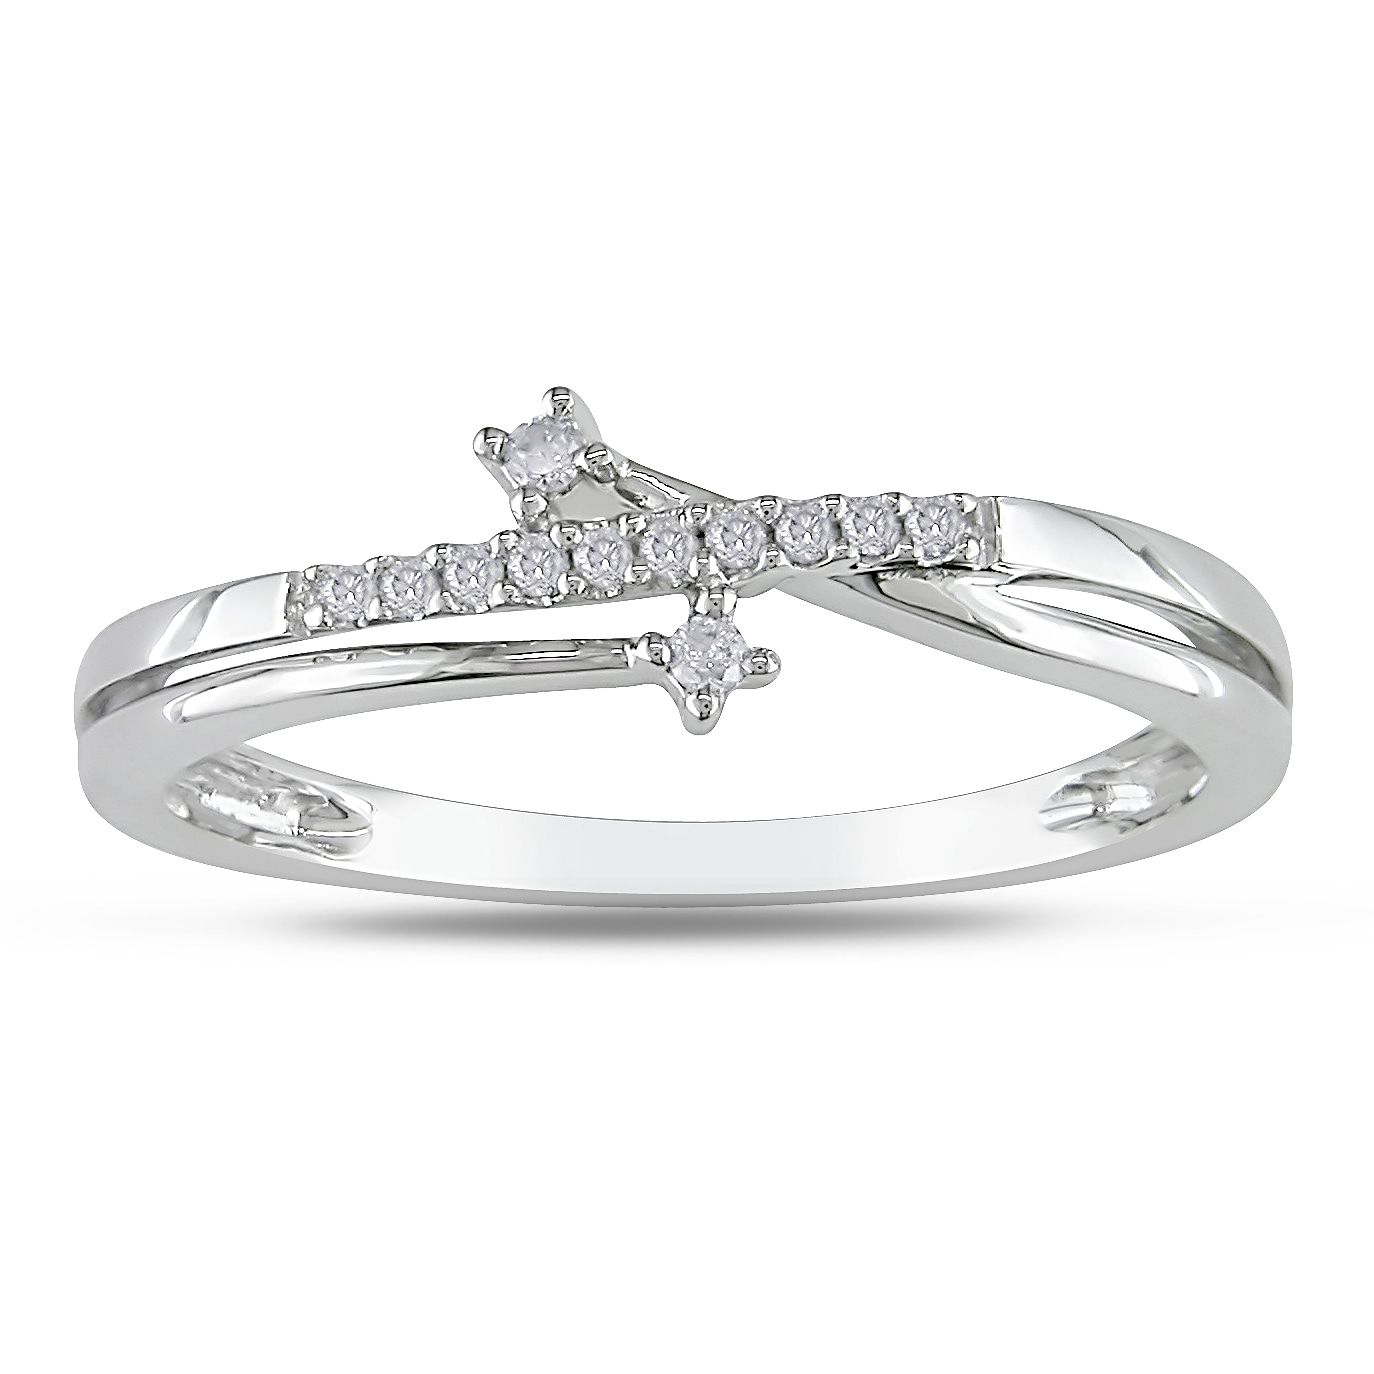 Miadora 10k White Gold Diamond Accent Ring